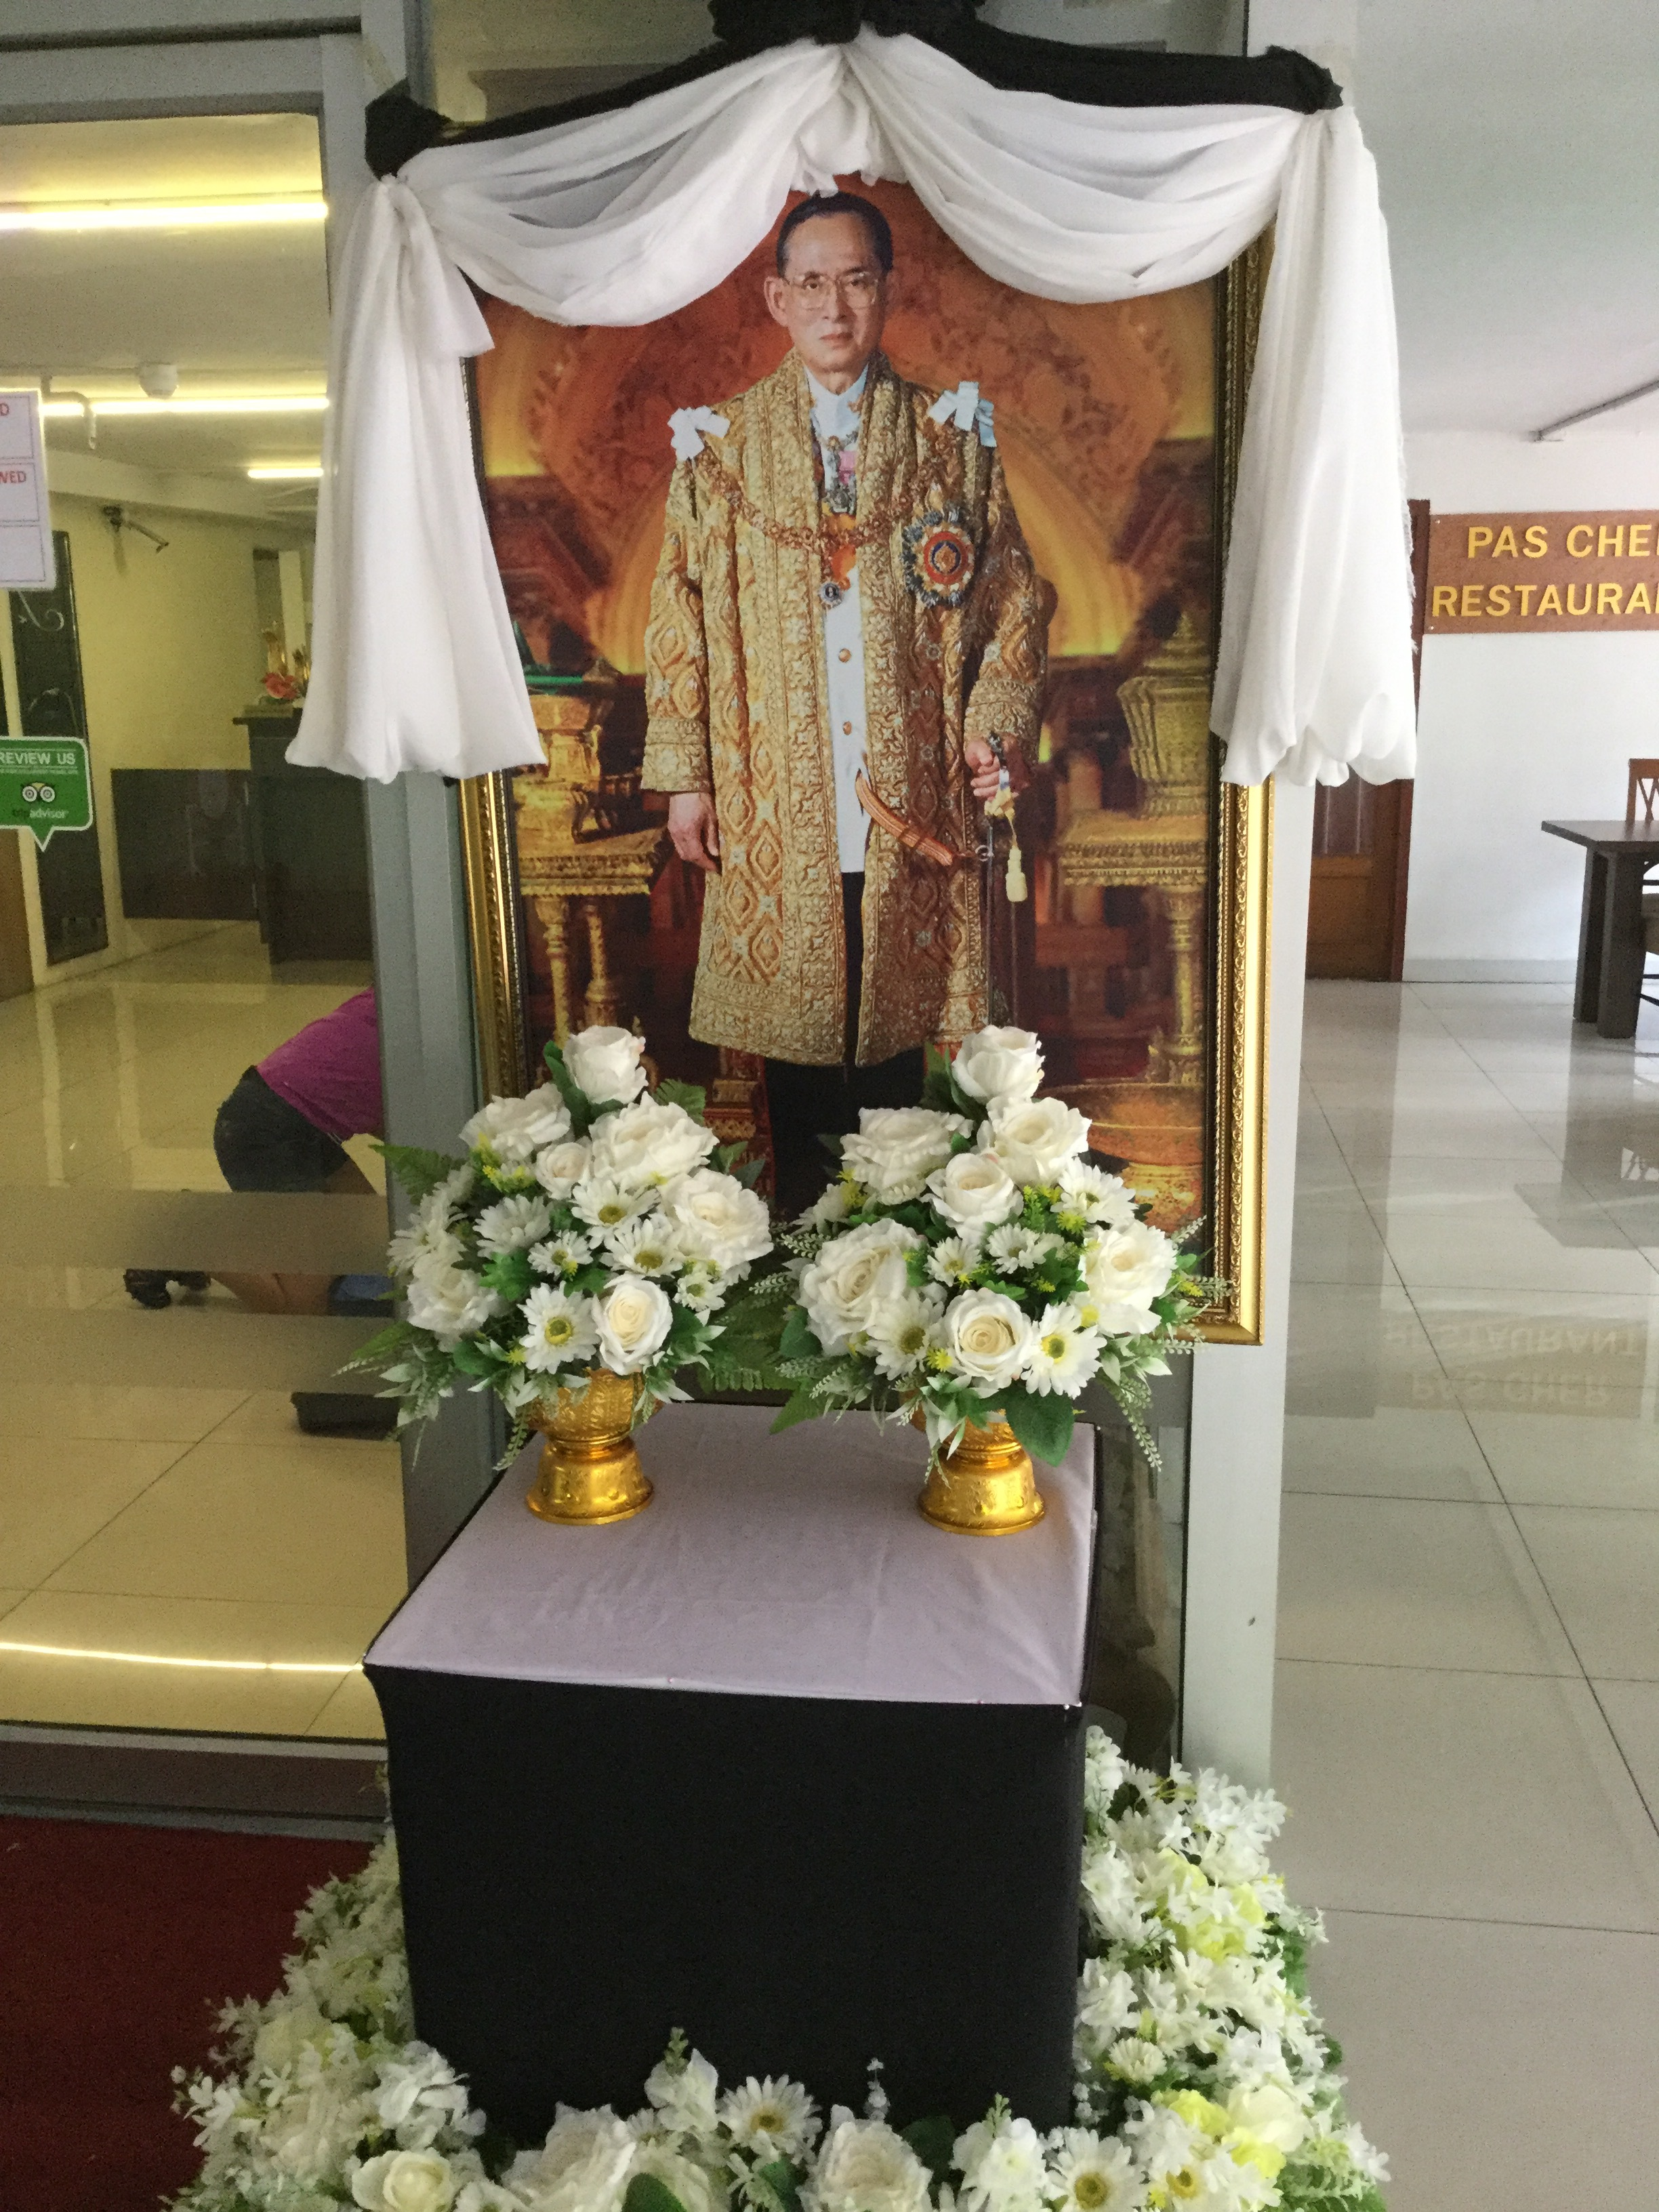 One of the many commemorative images of the King at entry to buildings. Black and white ribbons are everywhere in the City.